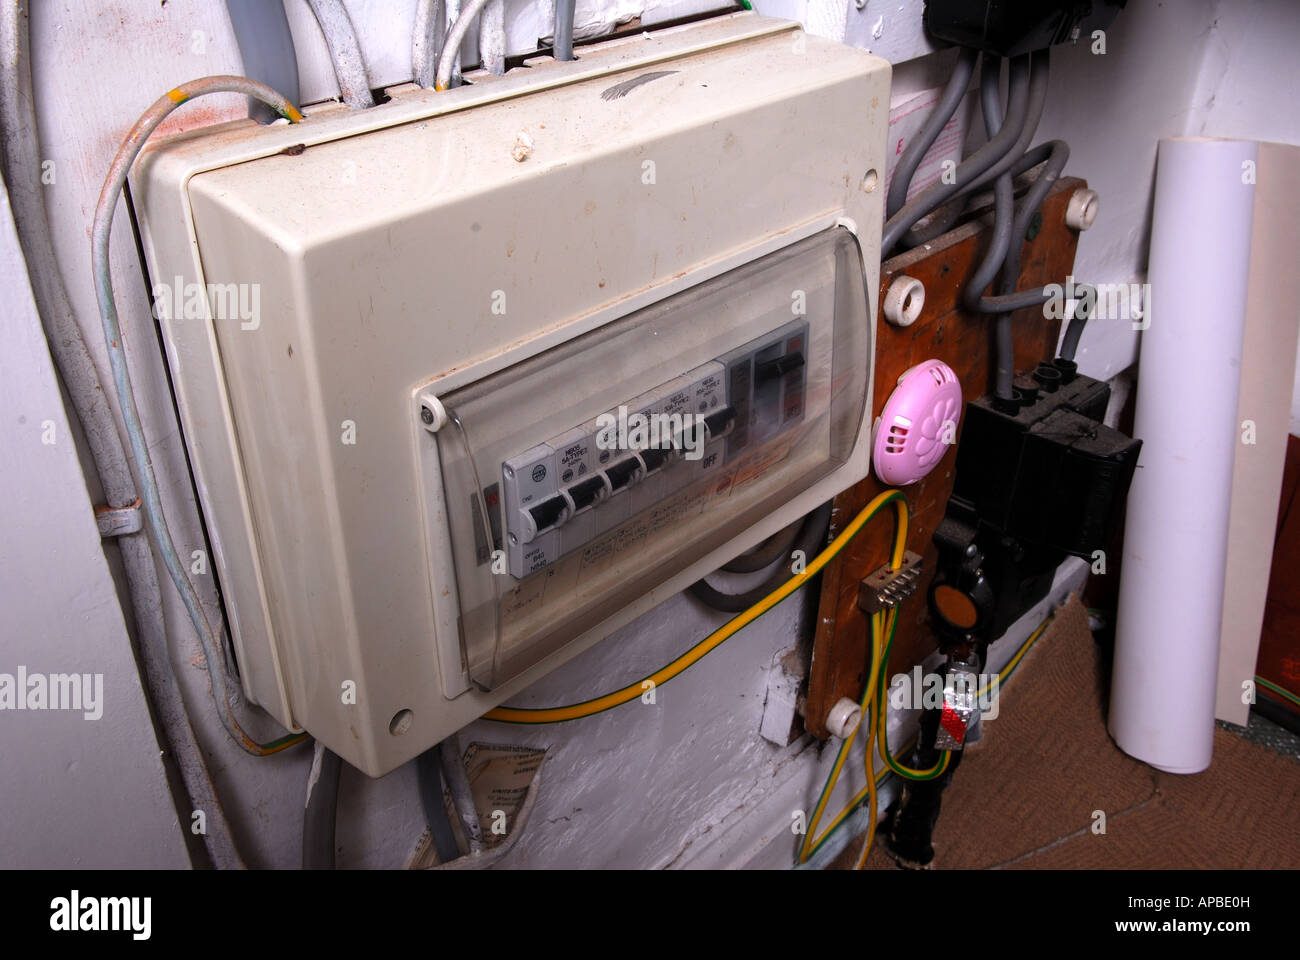 Fuse Box Home Wiring Library Electrical Stock Image